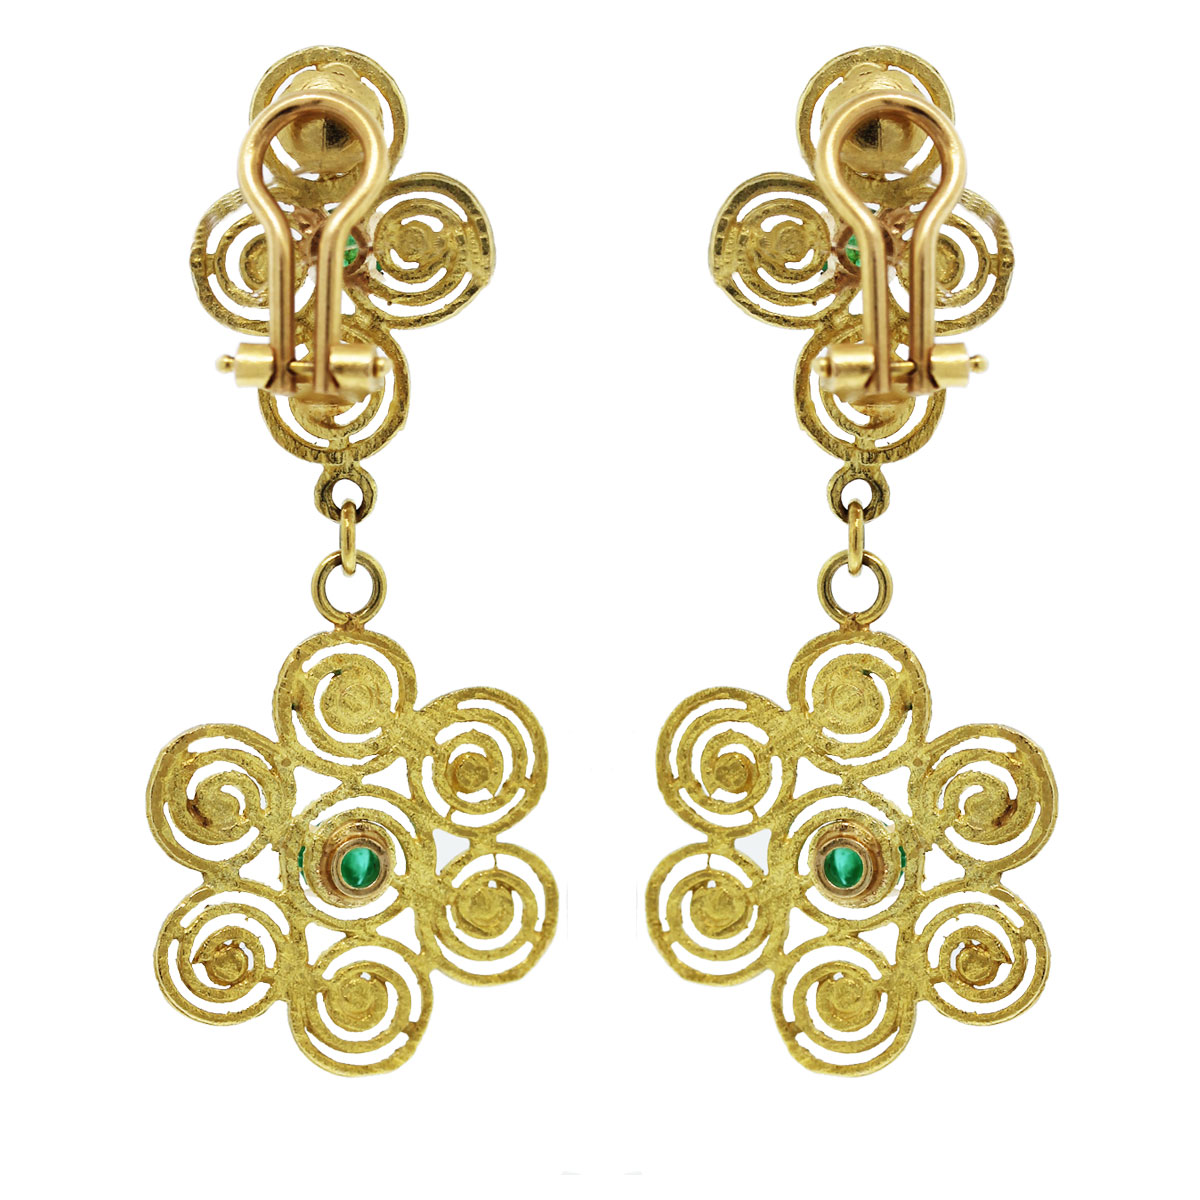 Check out these 14kt Hammered Gold Spiral Floral Emerald Cabochon Dangle Earrings